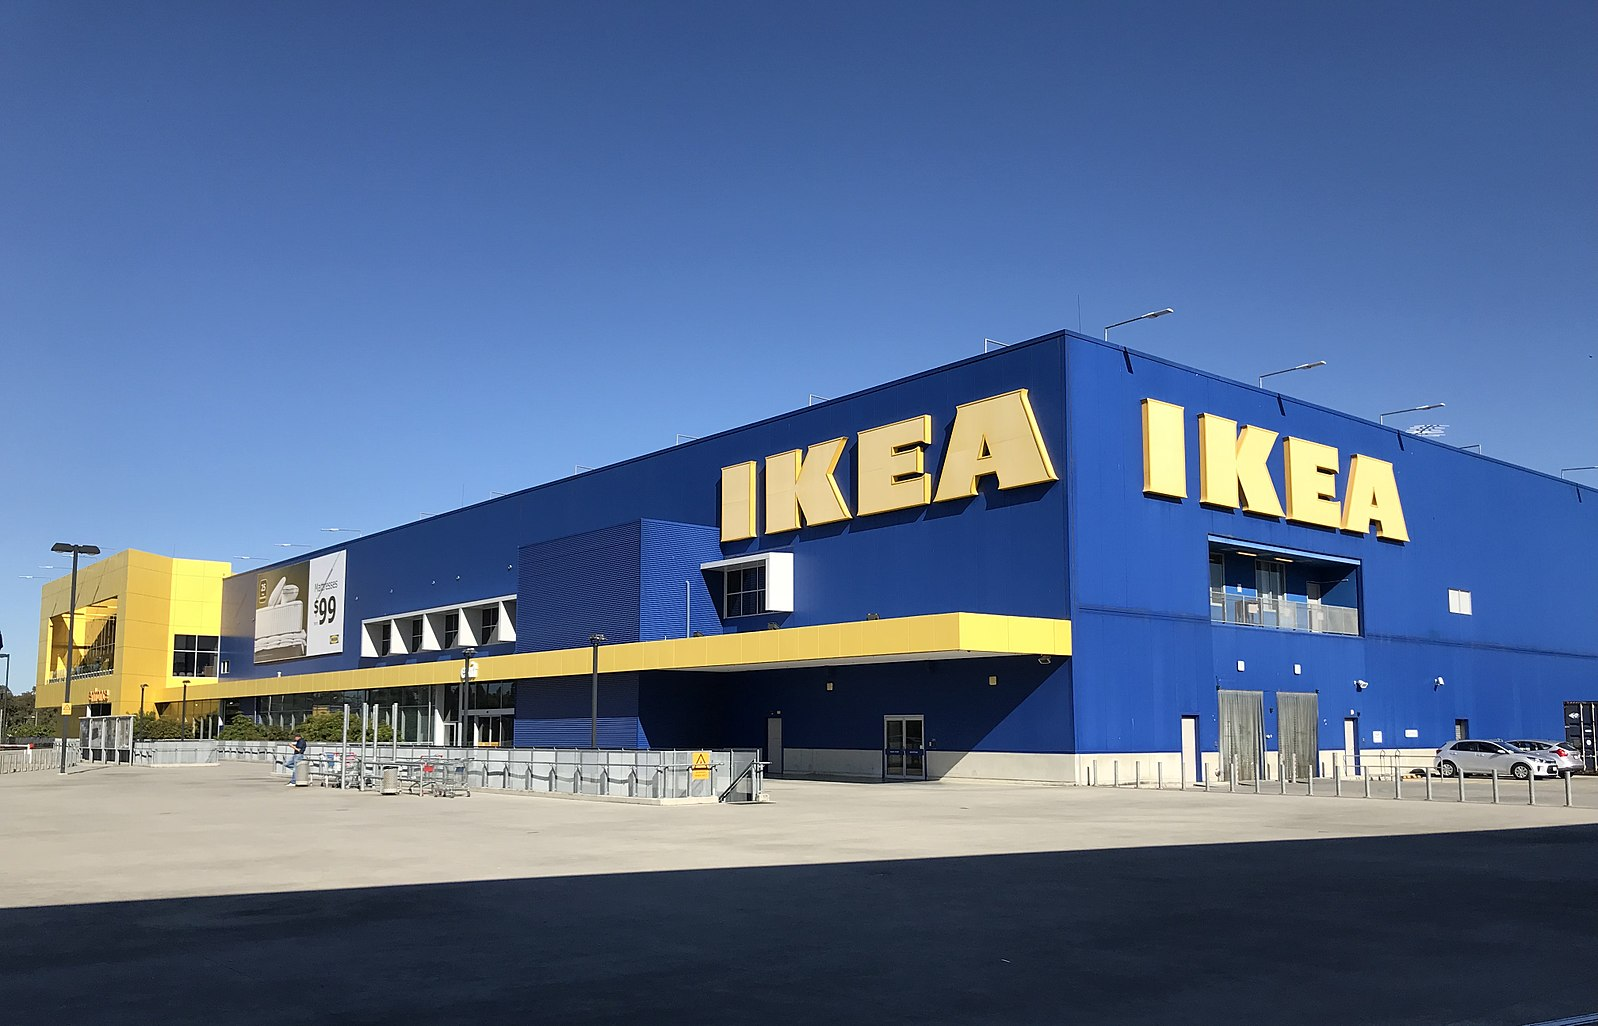 the outside of an Ikea store